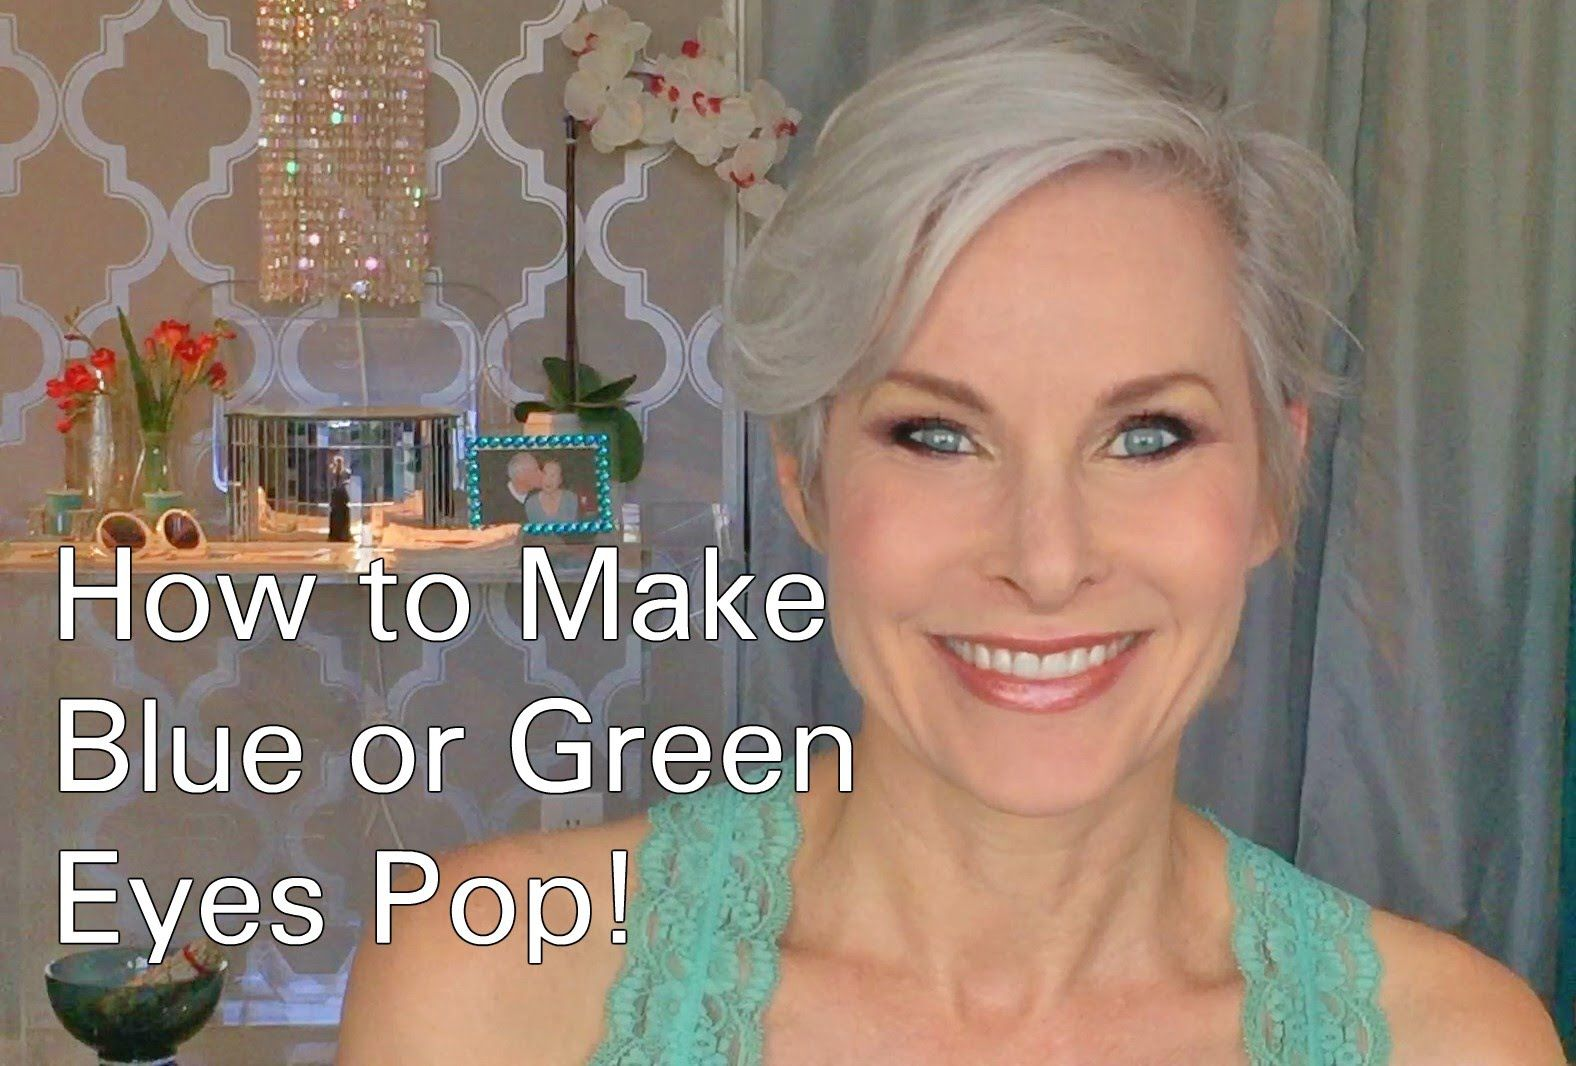 how to do eye makeup to make blue or green eyes pop! | green